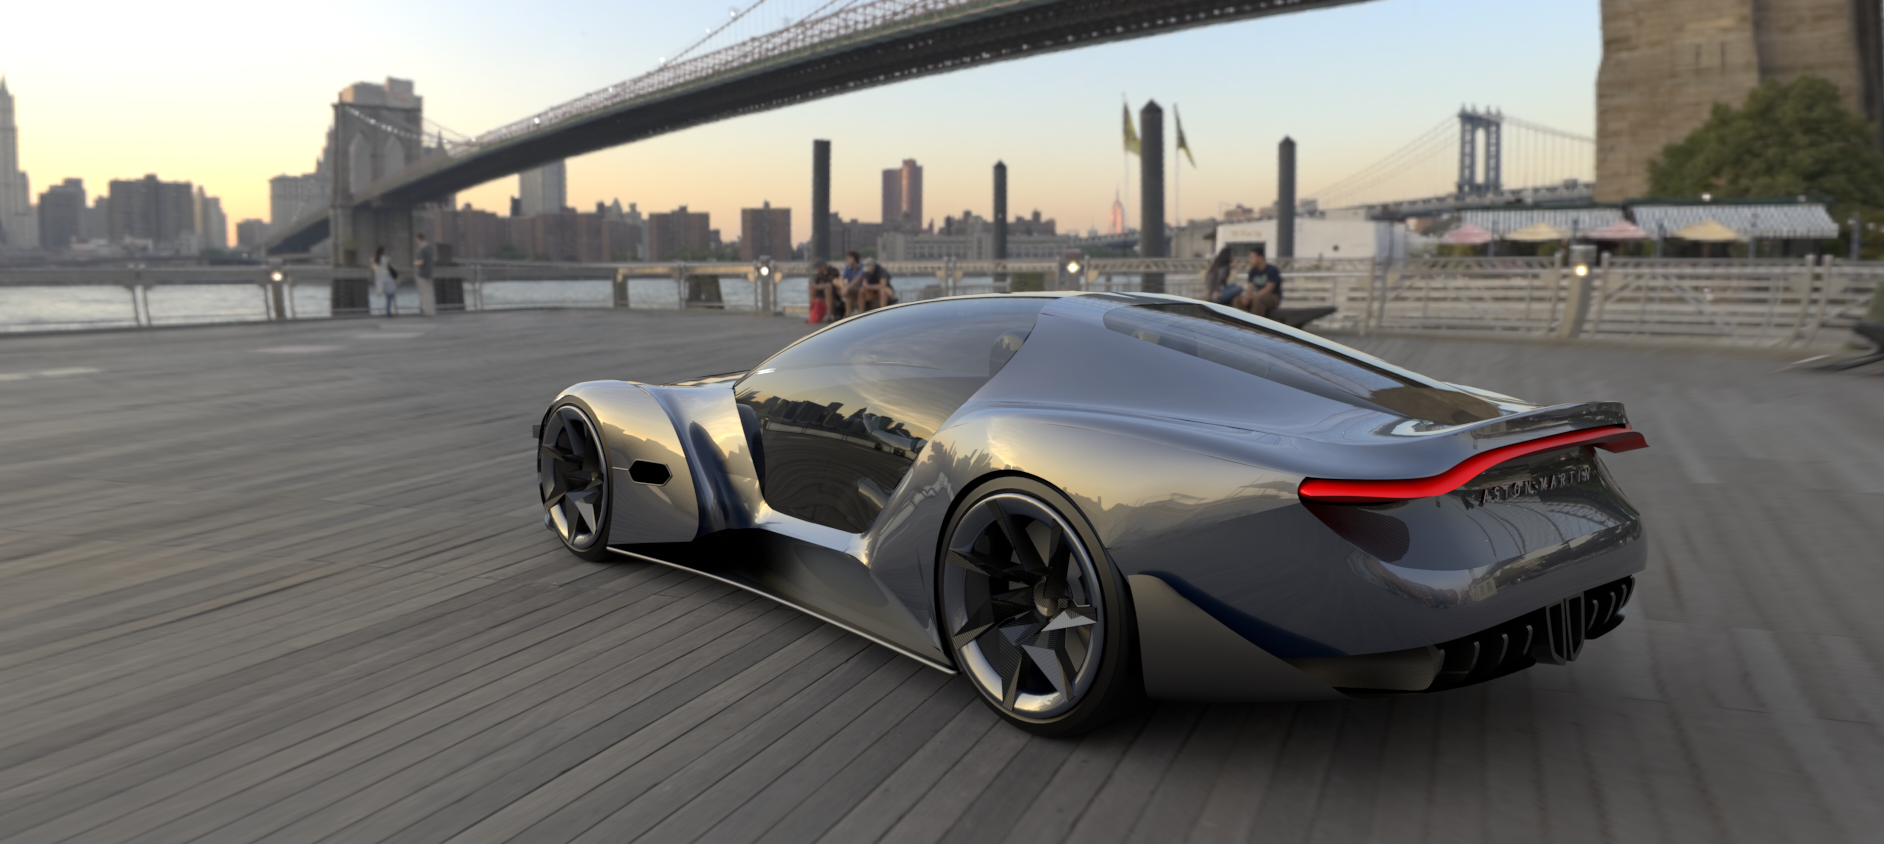 Ohranen did the rendering for an Aston Martin style car so that he was able to view a realistic-looking version through VR glasses. This first-time experience was thrilling.